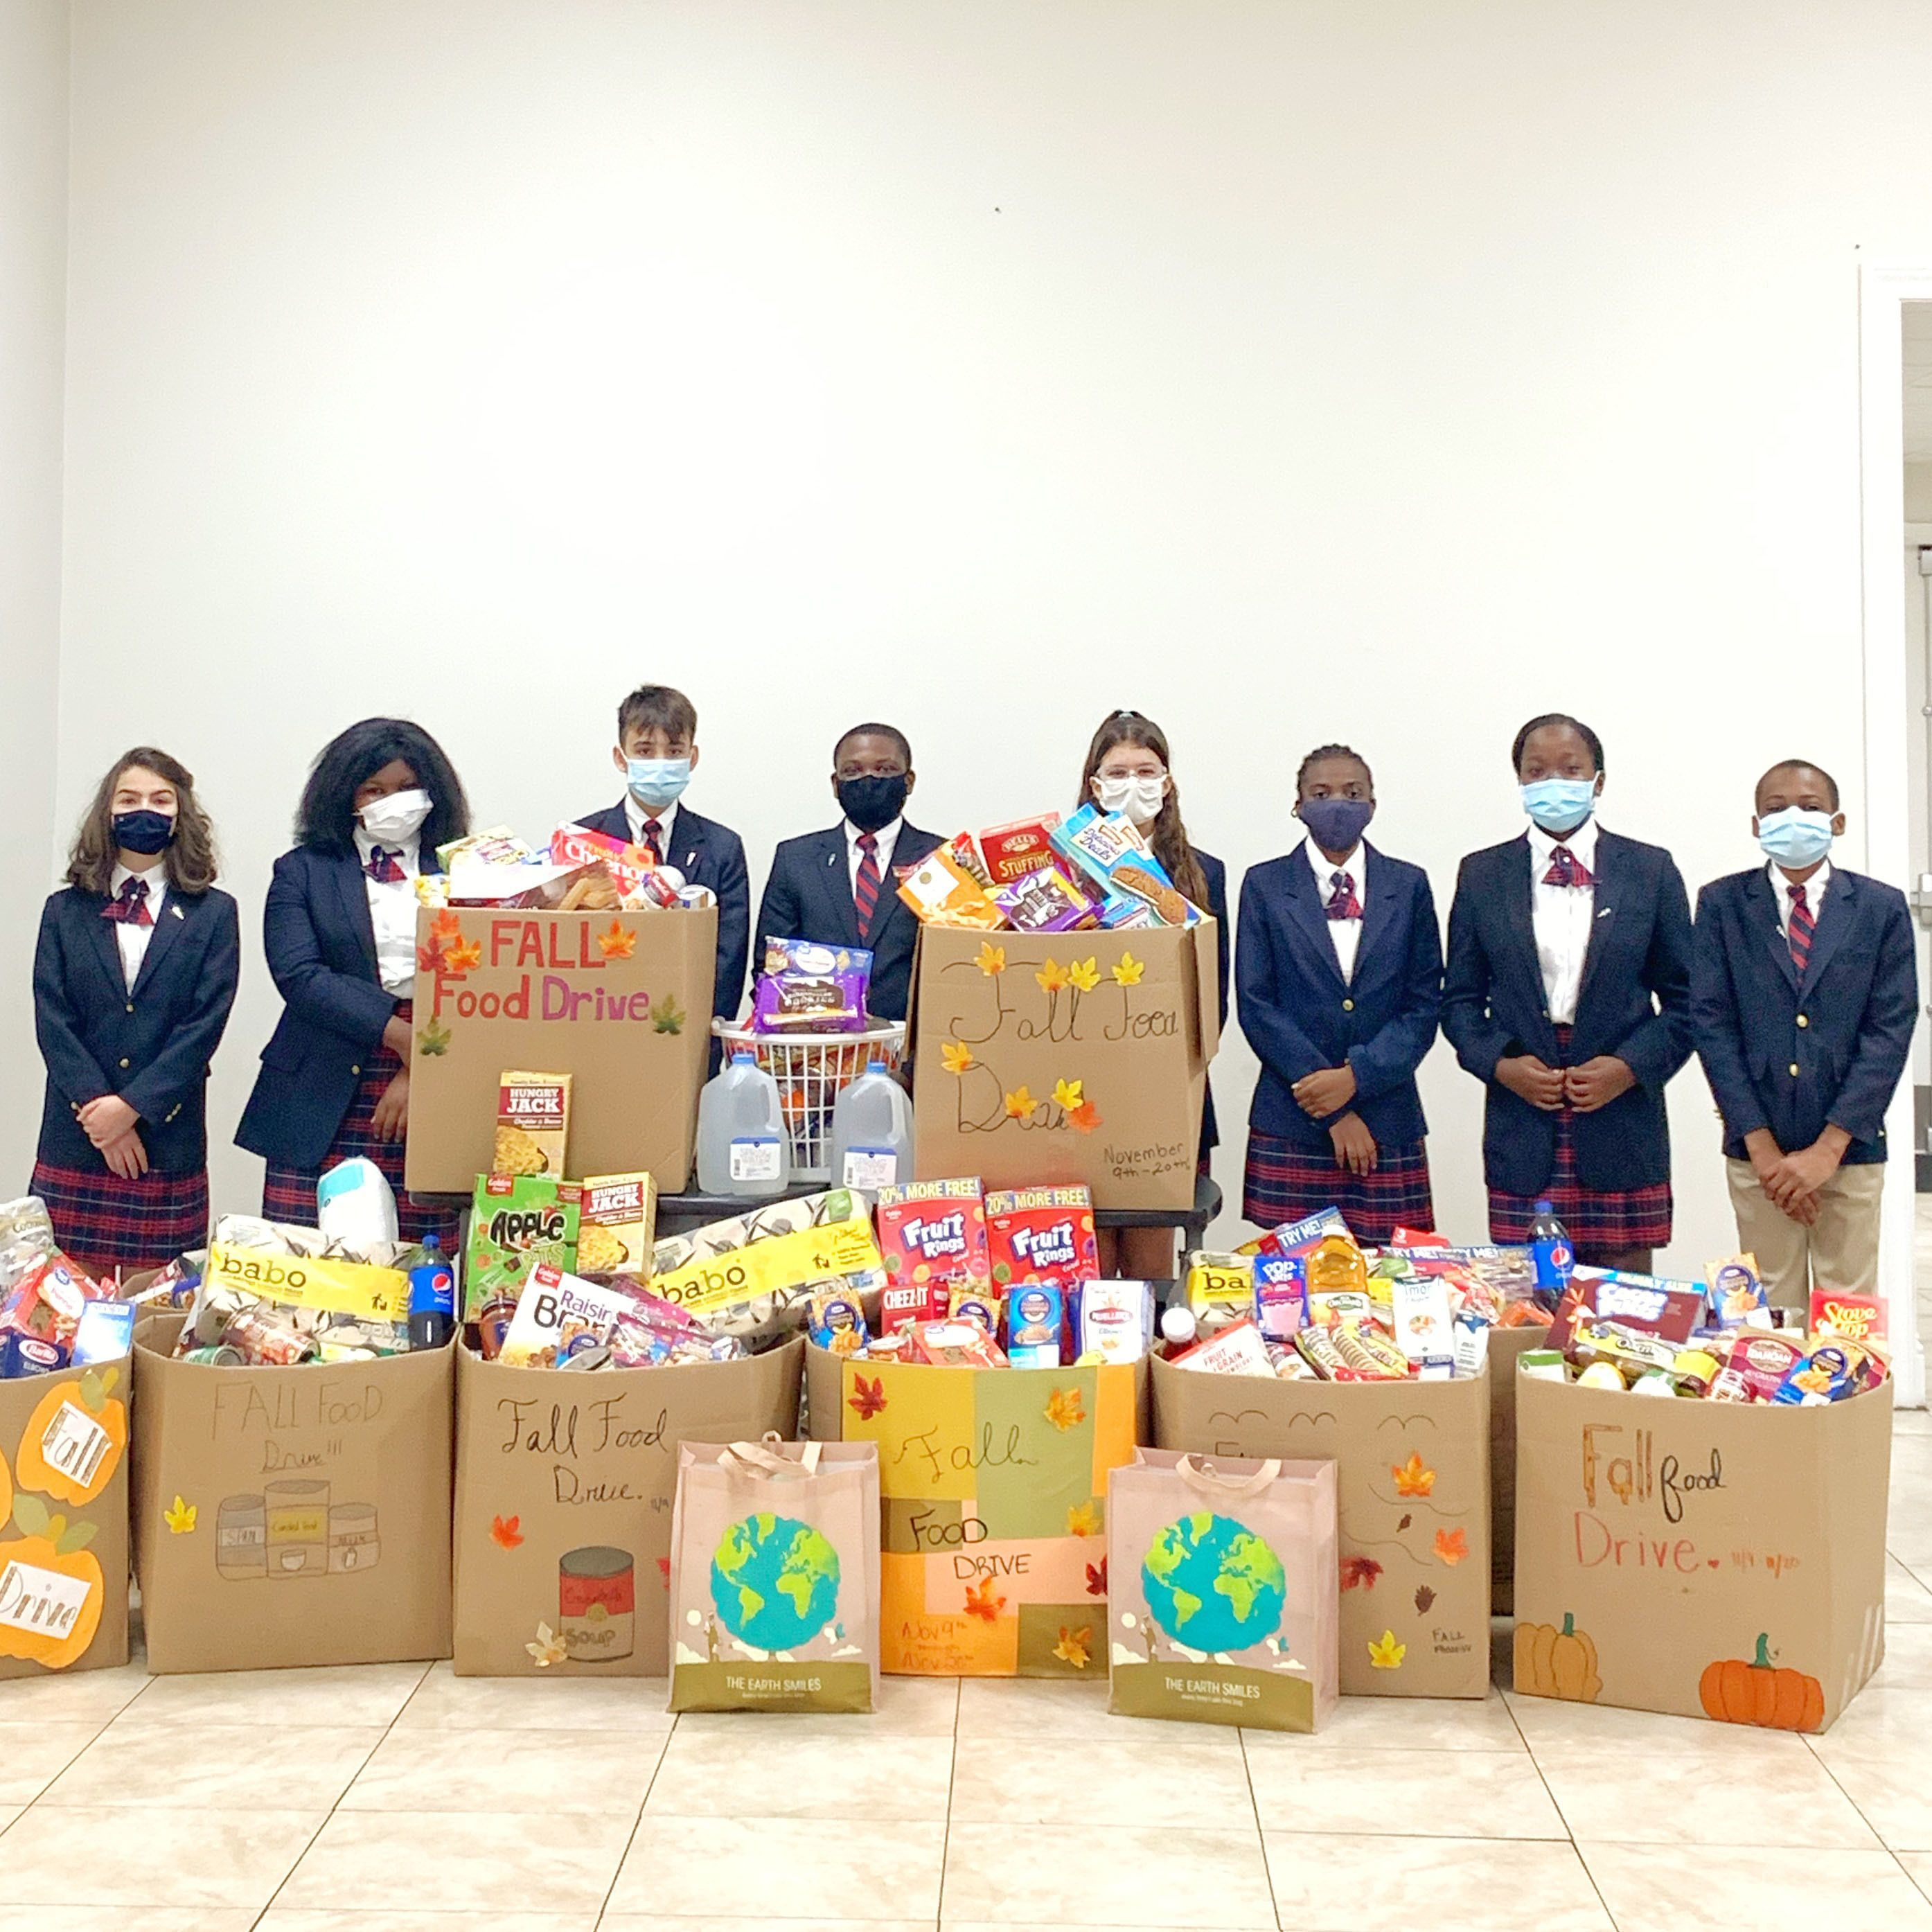 Honor society organizes Thanksgiving food drive